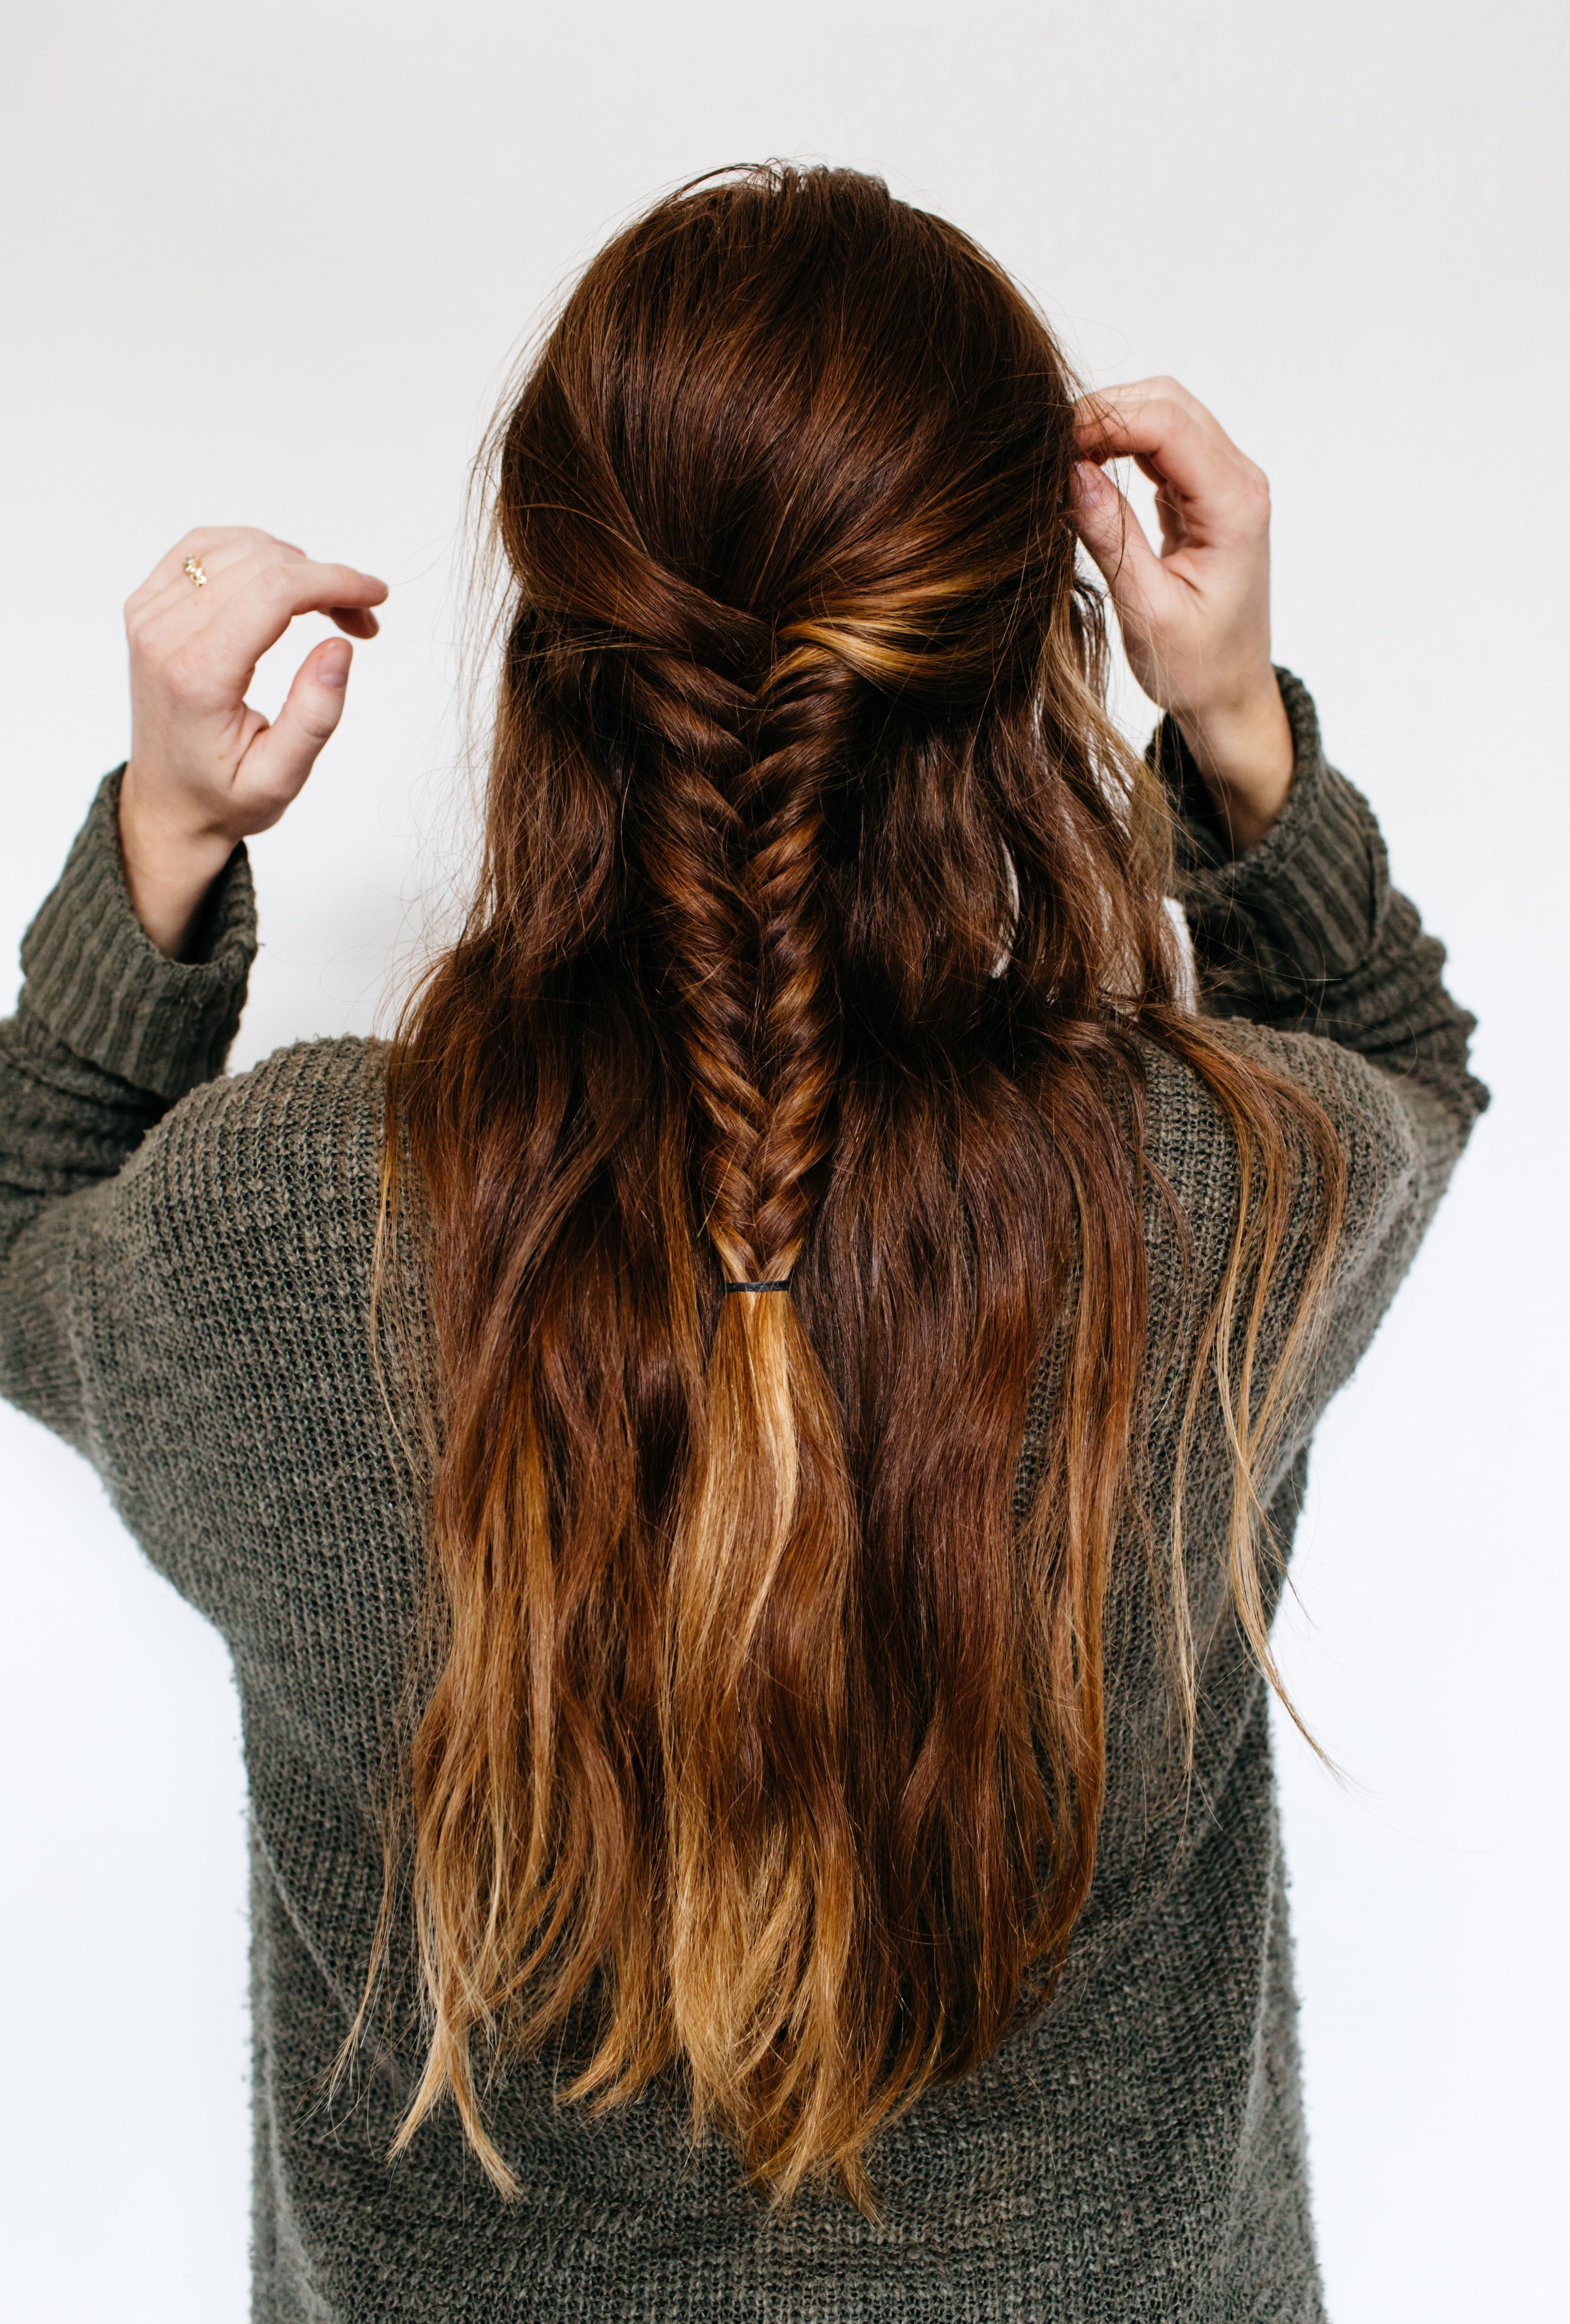 Half up half down fishtail braid hairstyle for thick medium length